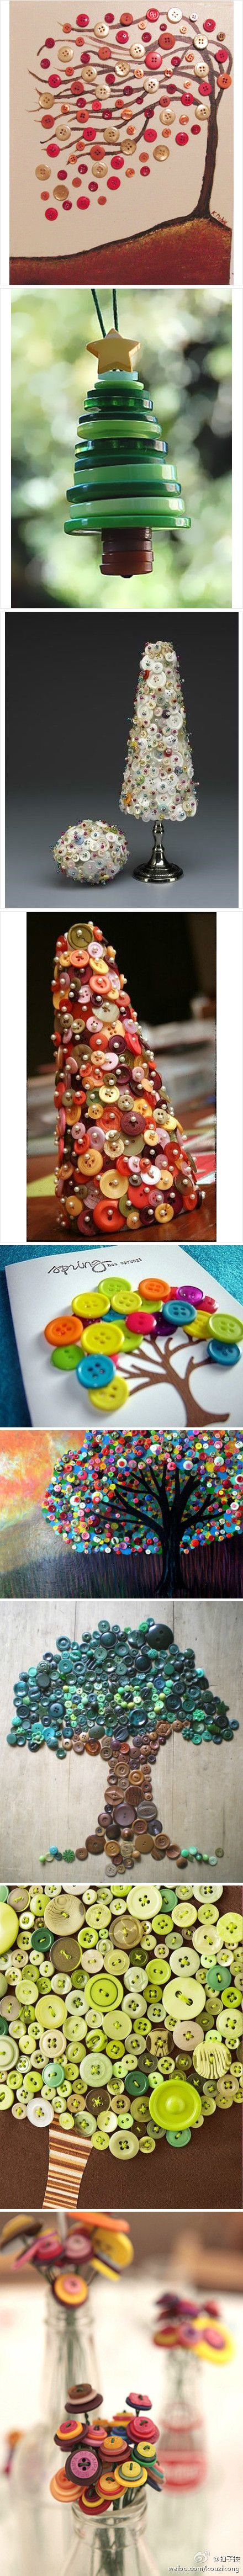 Button Crafts! Love the button tree ornament